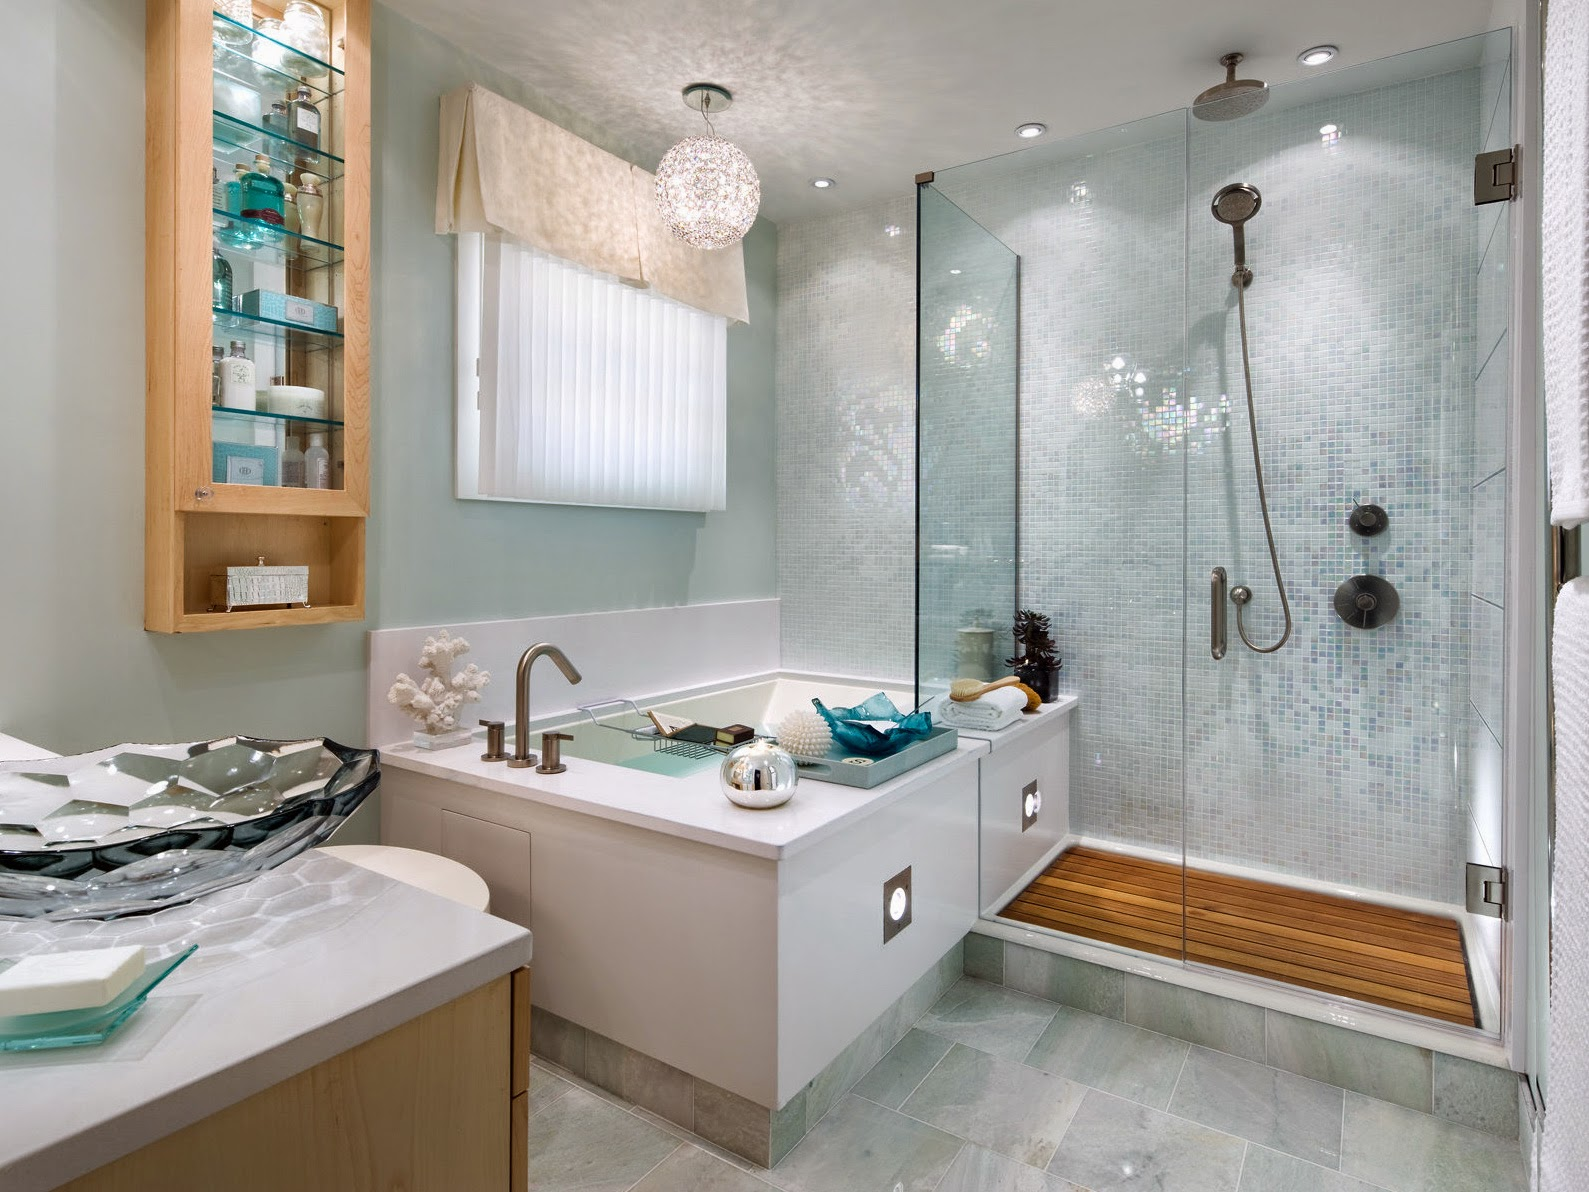 We Also Delivers Some Of Handy Bathroom Design Advice In Which The Following Tricks Can Be Very Simple You May Put Into Practice Pretty